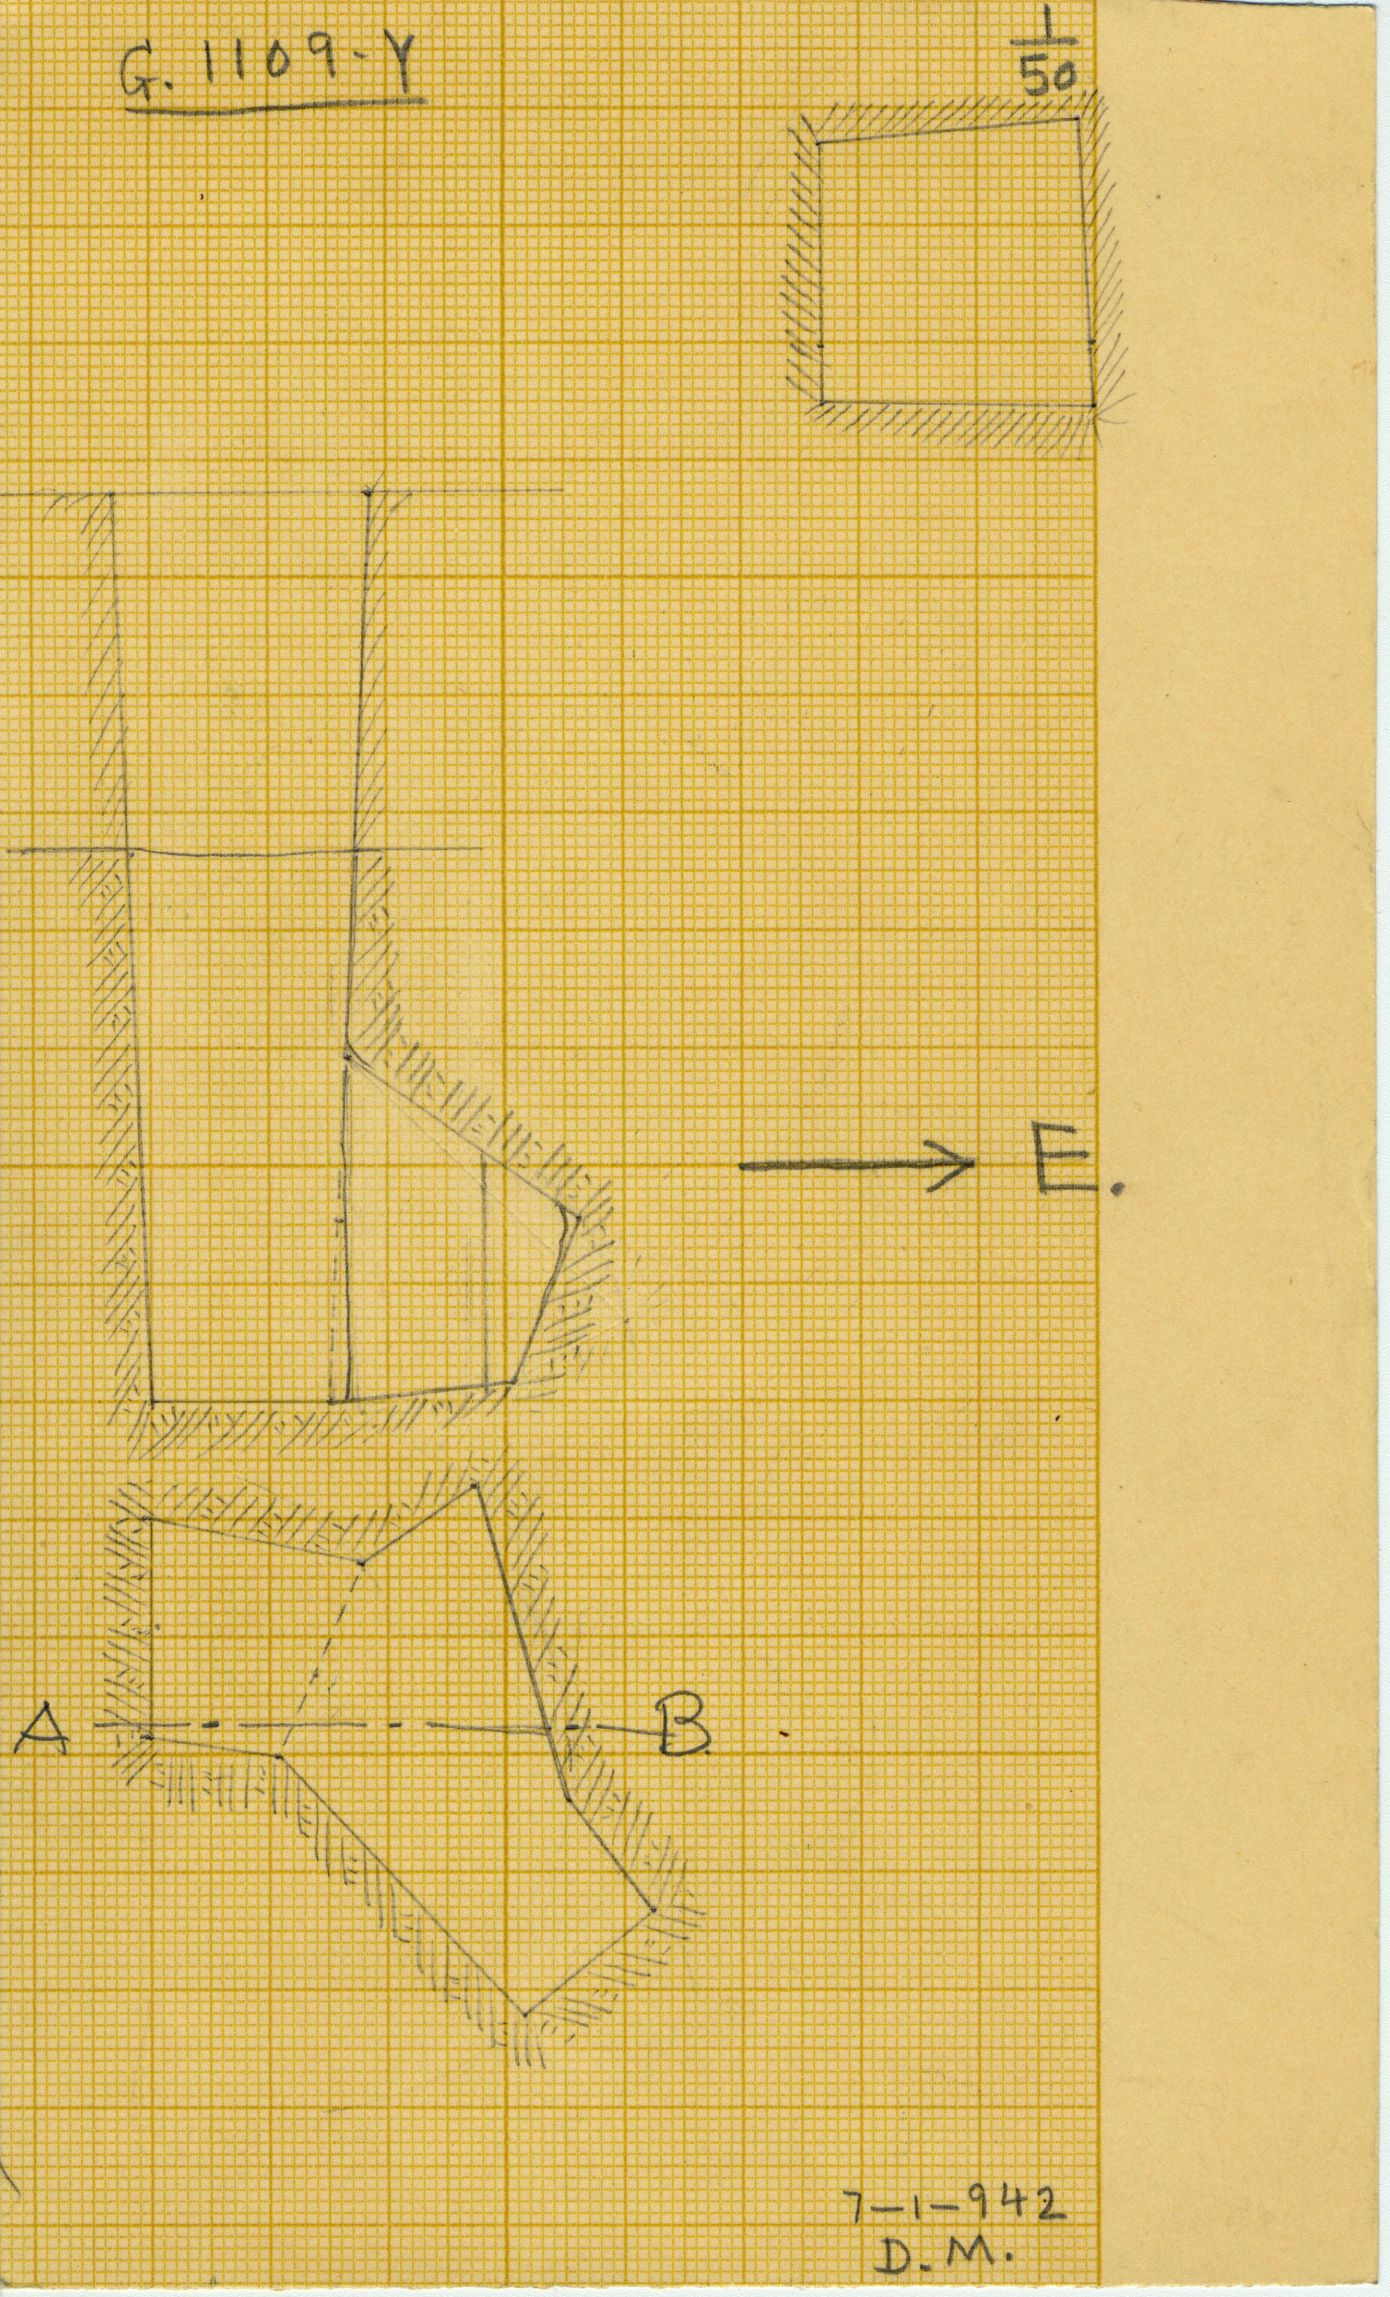 Maps and plans: G 1109, Shaft Y